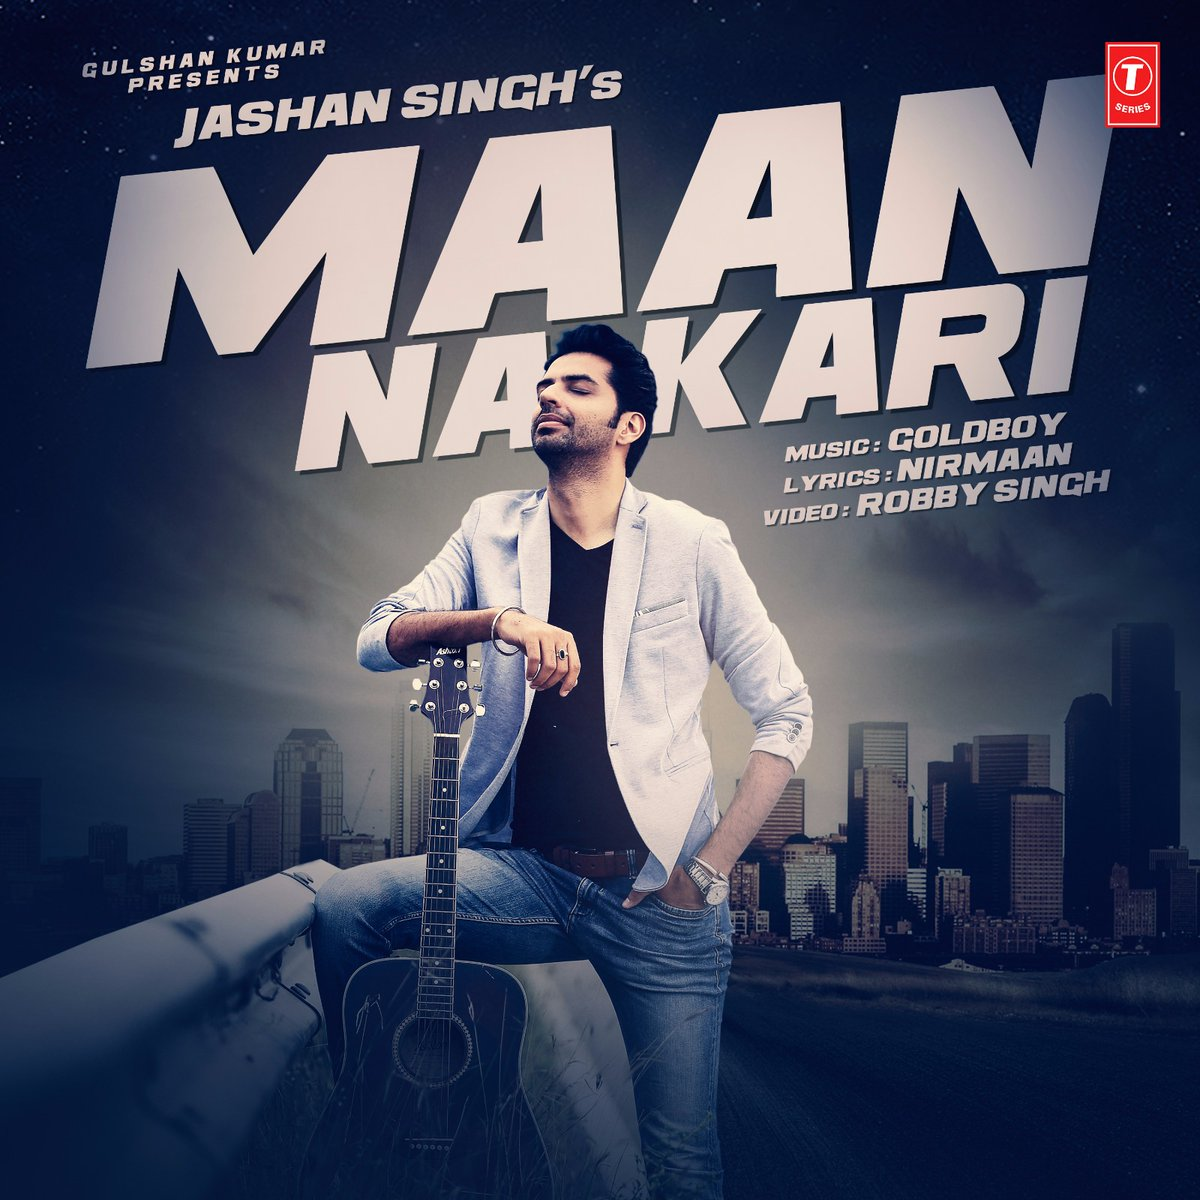 maan na kari lyrics, maan na kari punjabi lyrics, maan na kari jashan singh lyrics, maan na kari new song by jashan singh, maan na kari song lyrics